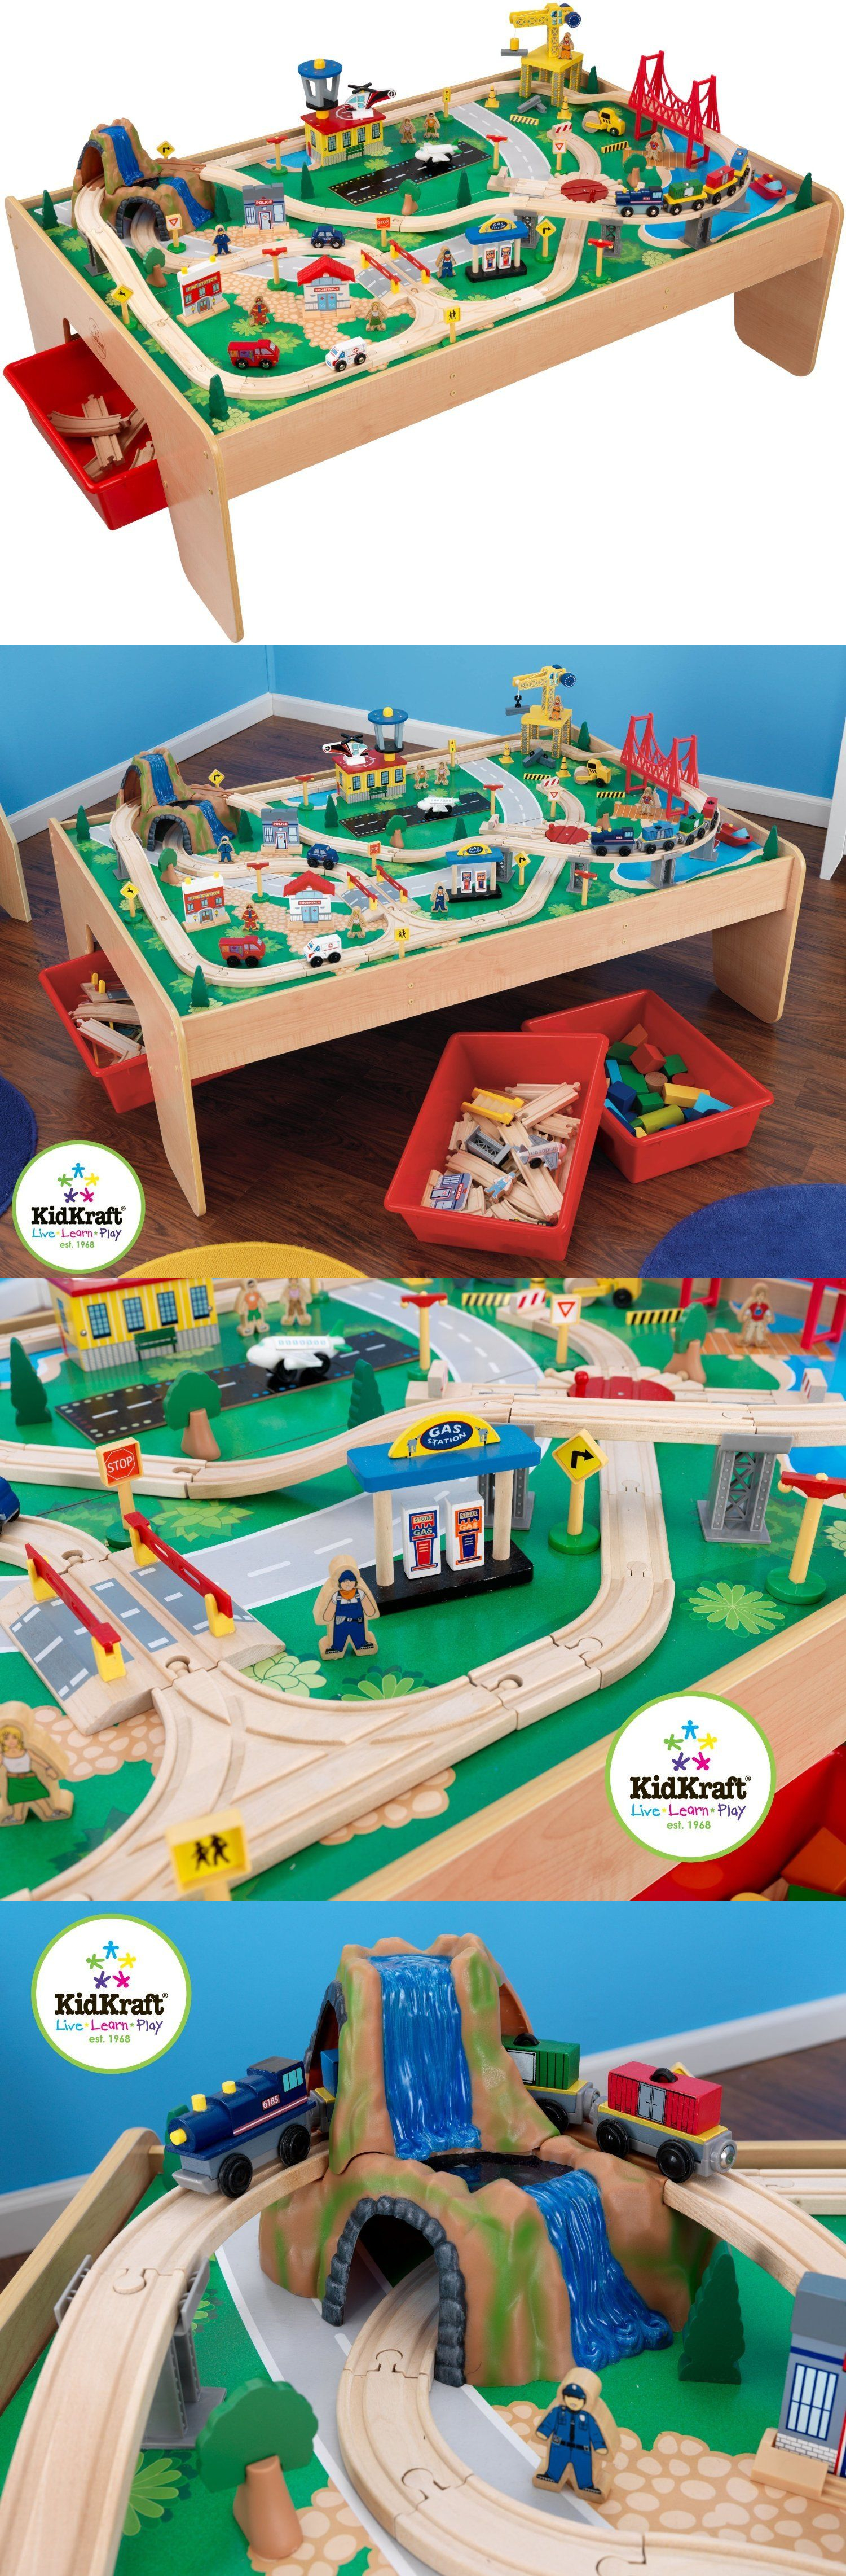 Wooden And Handcrafted Toys 1197: Waterfall Mountain Train Set And Table  Kidkraft Pretend Play Preschool